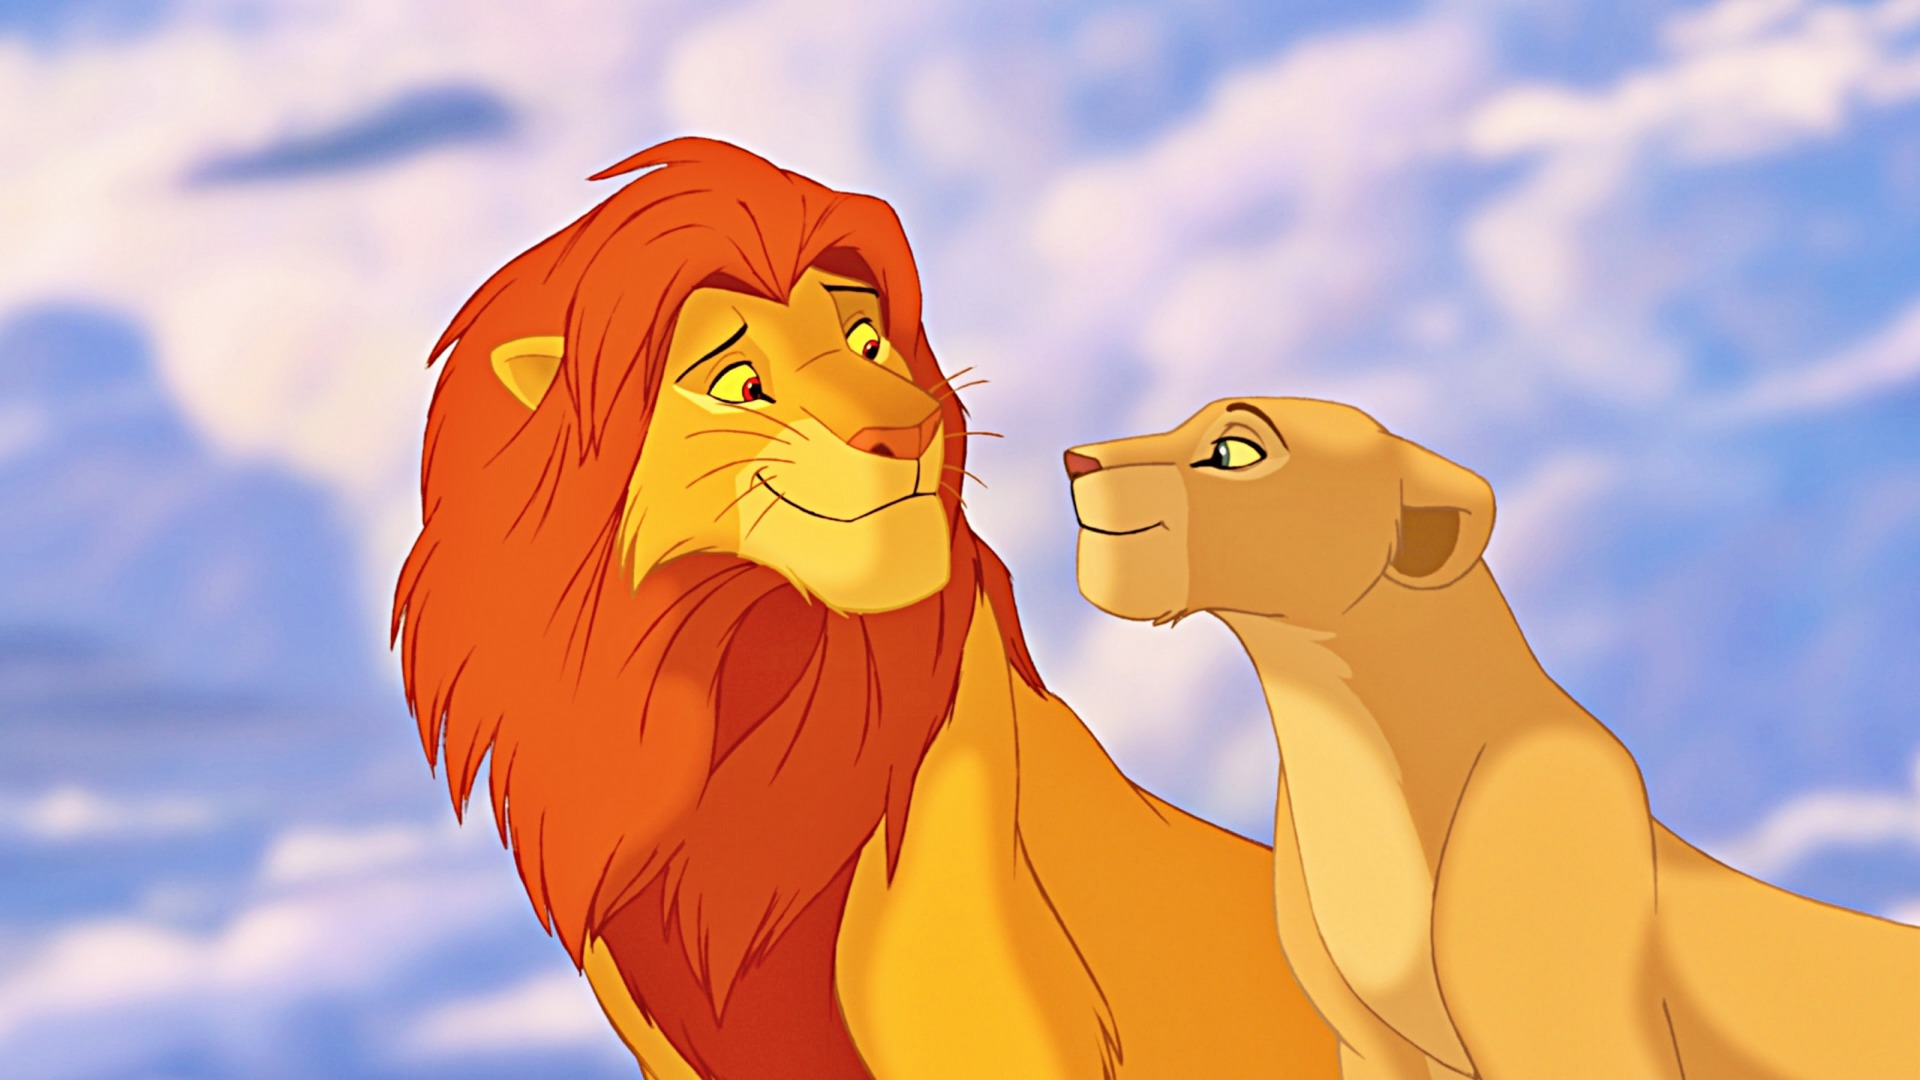 The Lion King Res - Lion King Hd , HD Wallpaper & Backgrounds